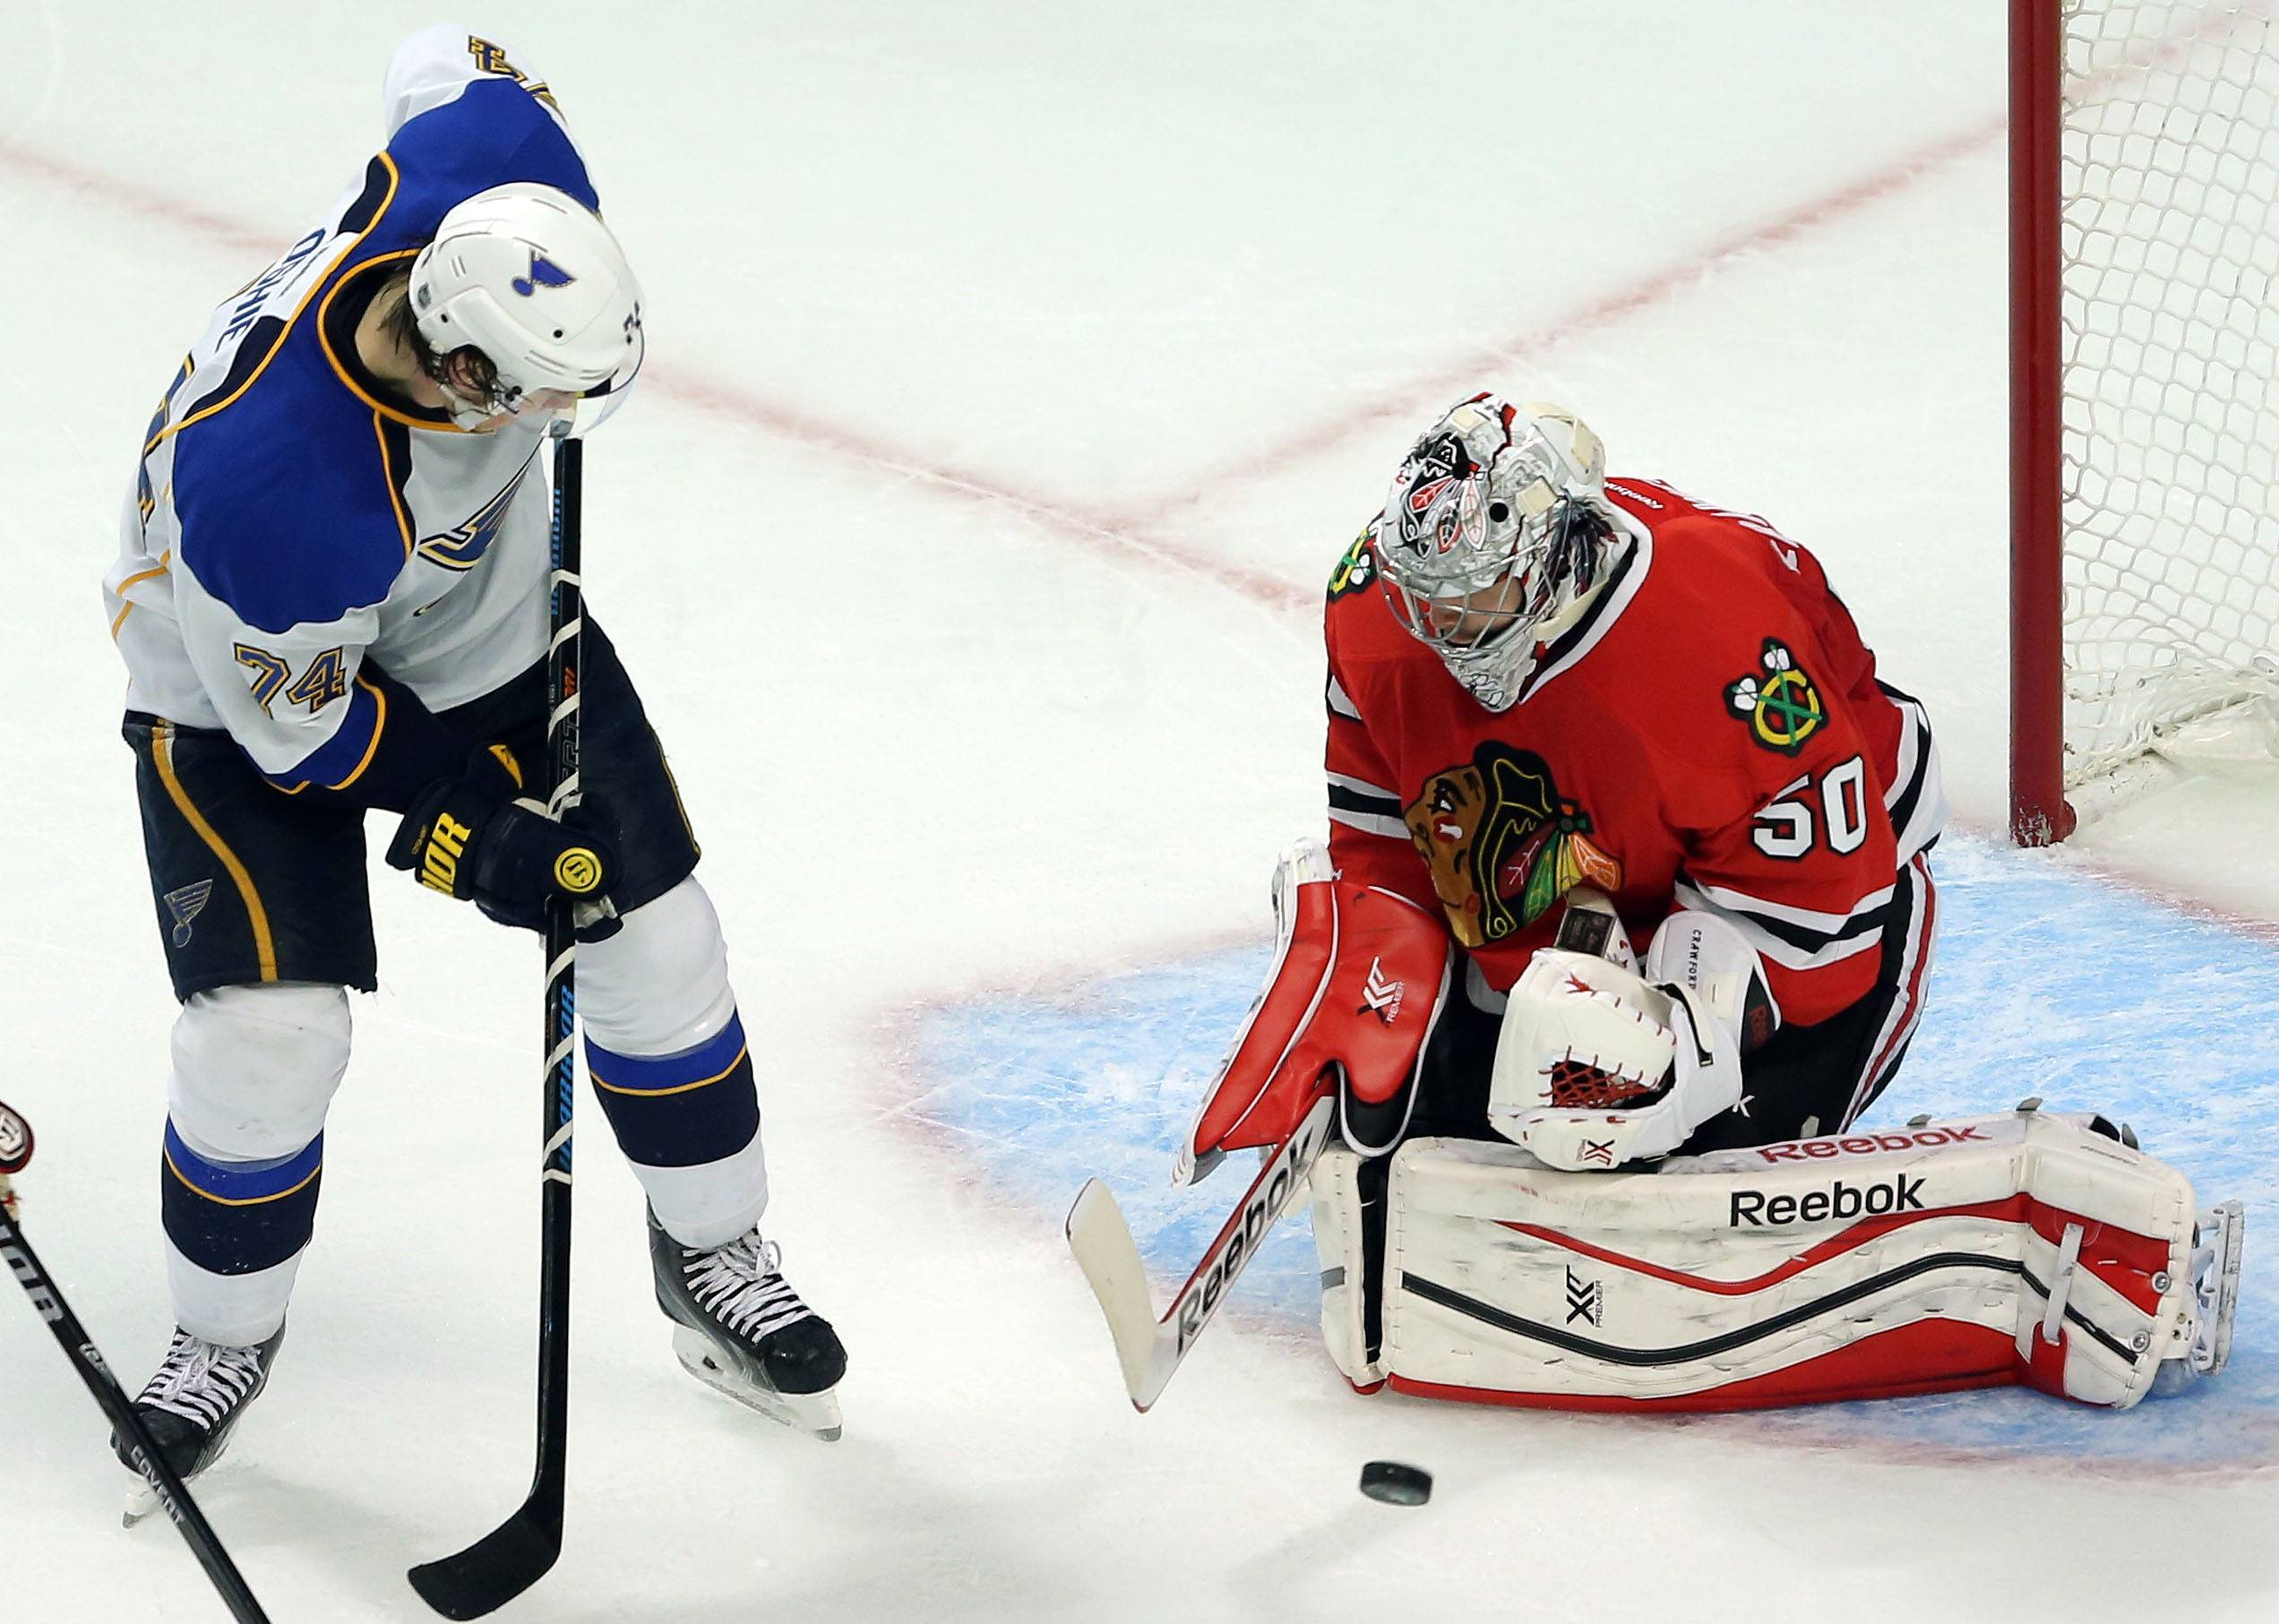 St. Louis Blues right wing T.J. Oshie shoots on Chicago Blackhawks goalie Corey Crawford.